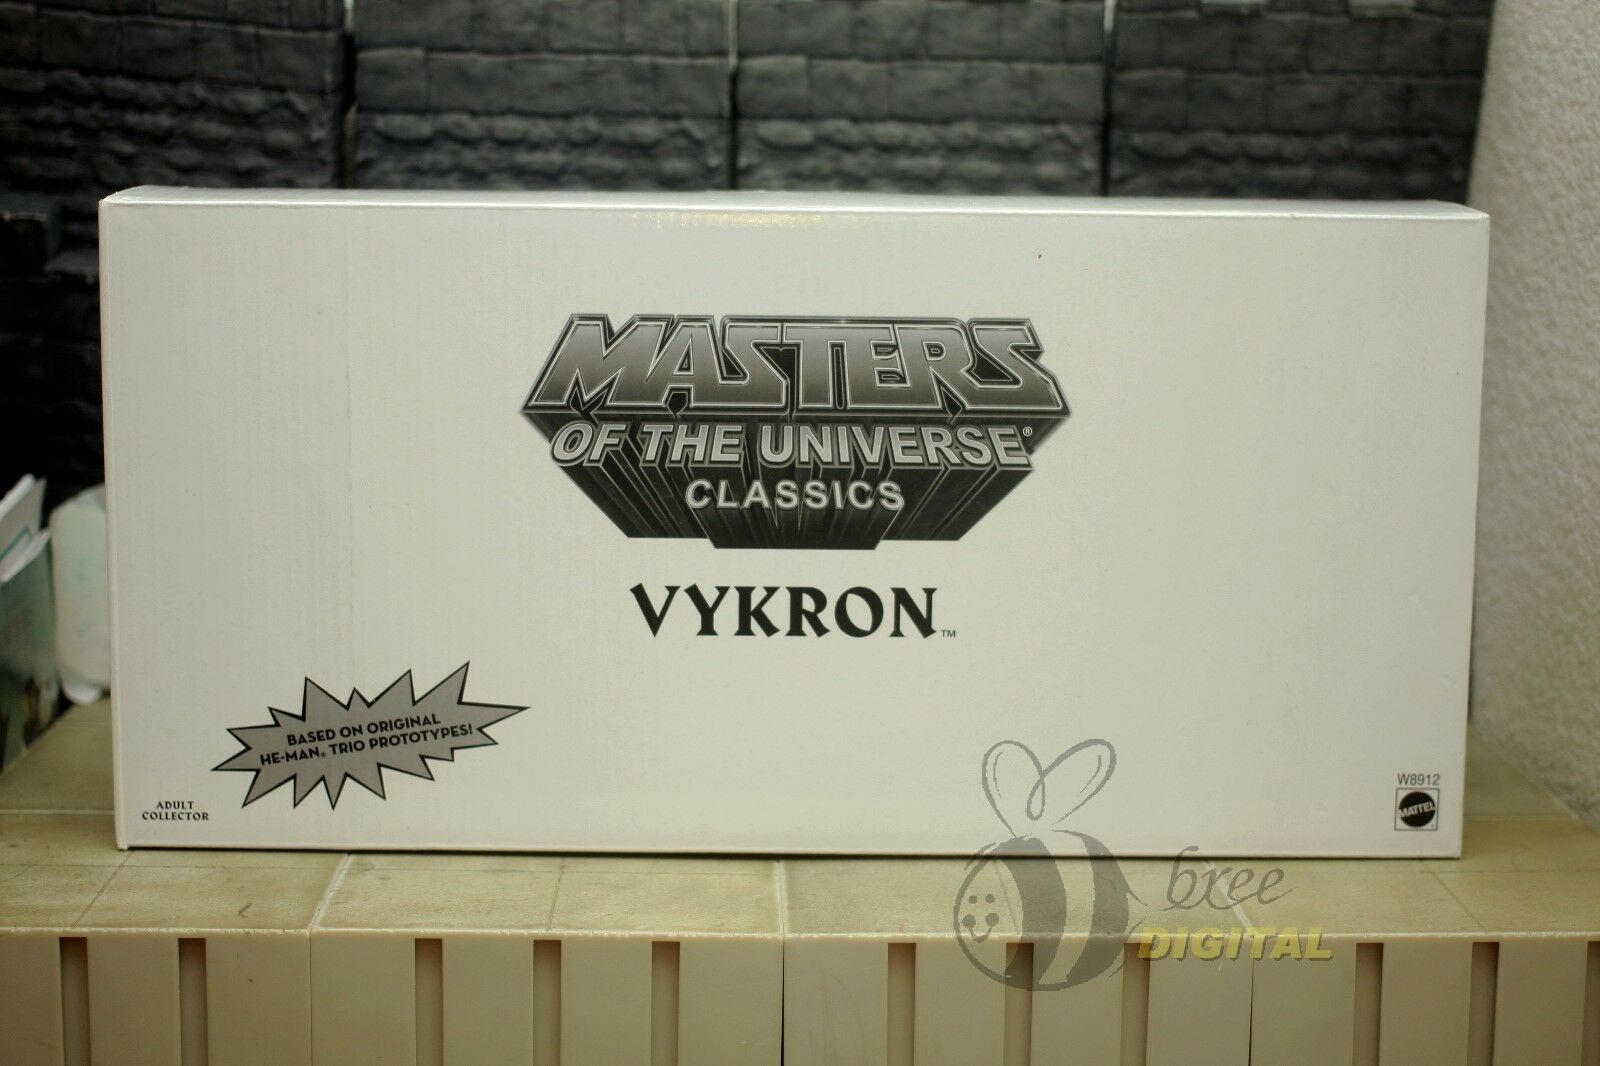 SDCC Masters of the Universe Vykron